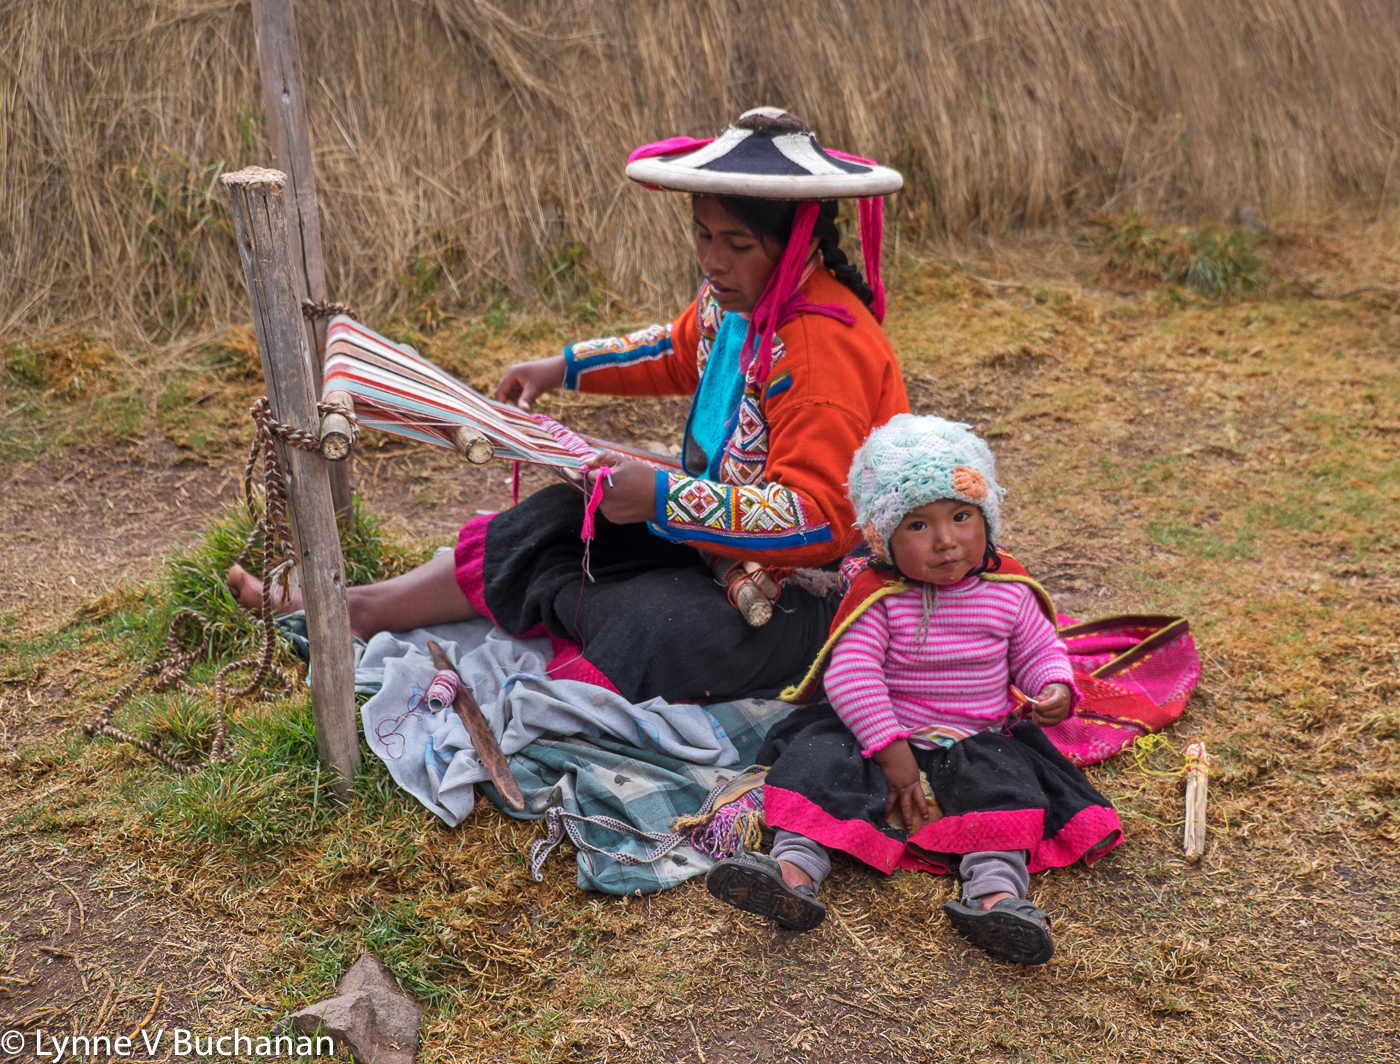 Woman Weaving with Child